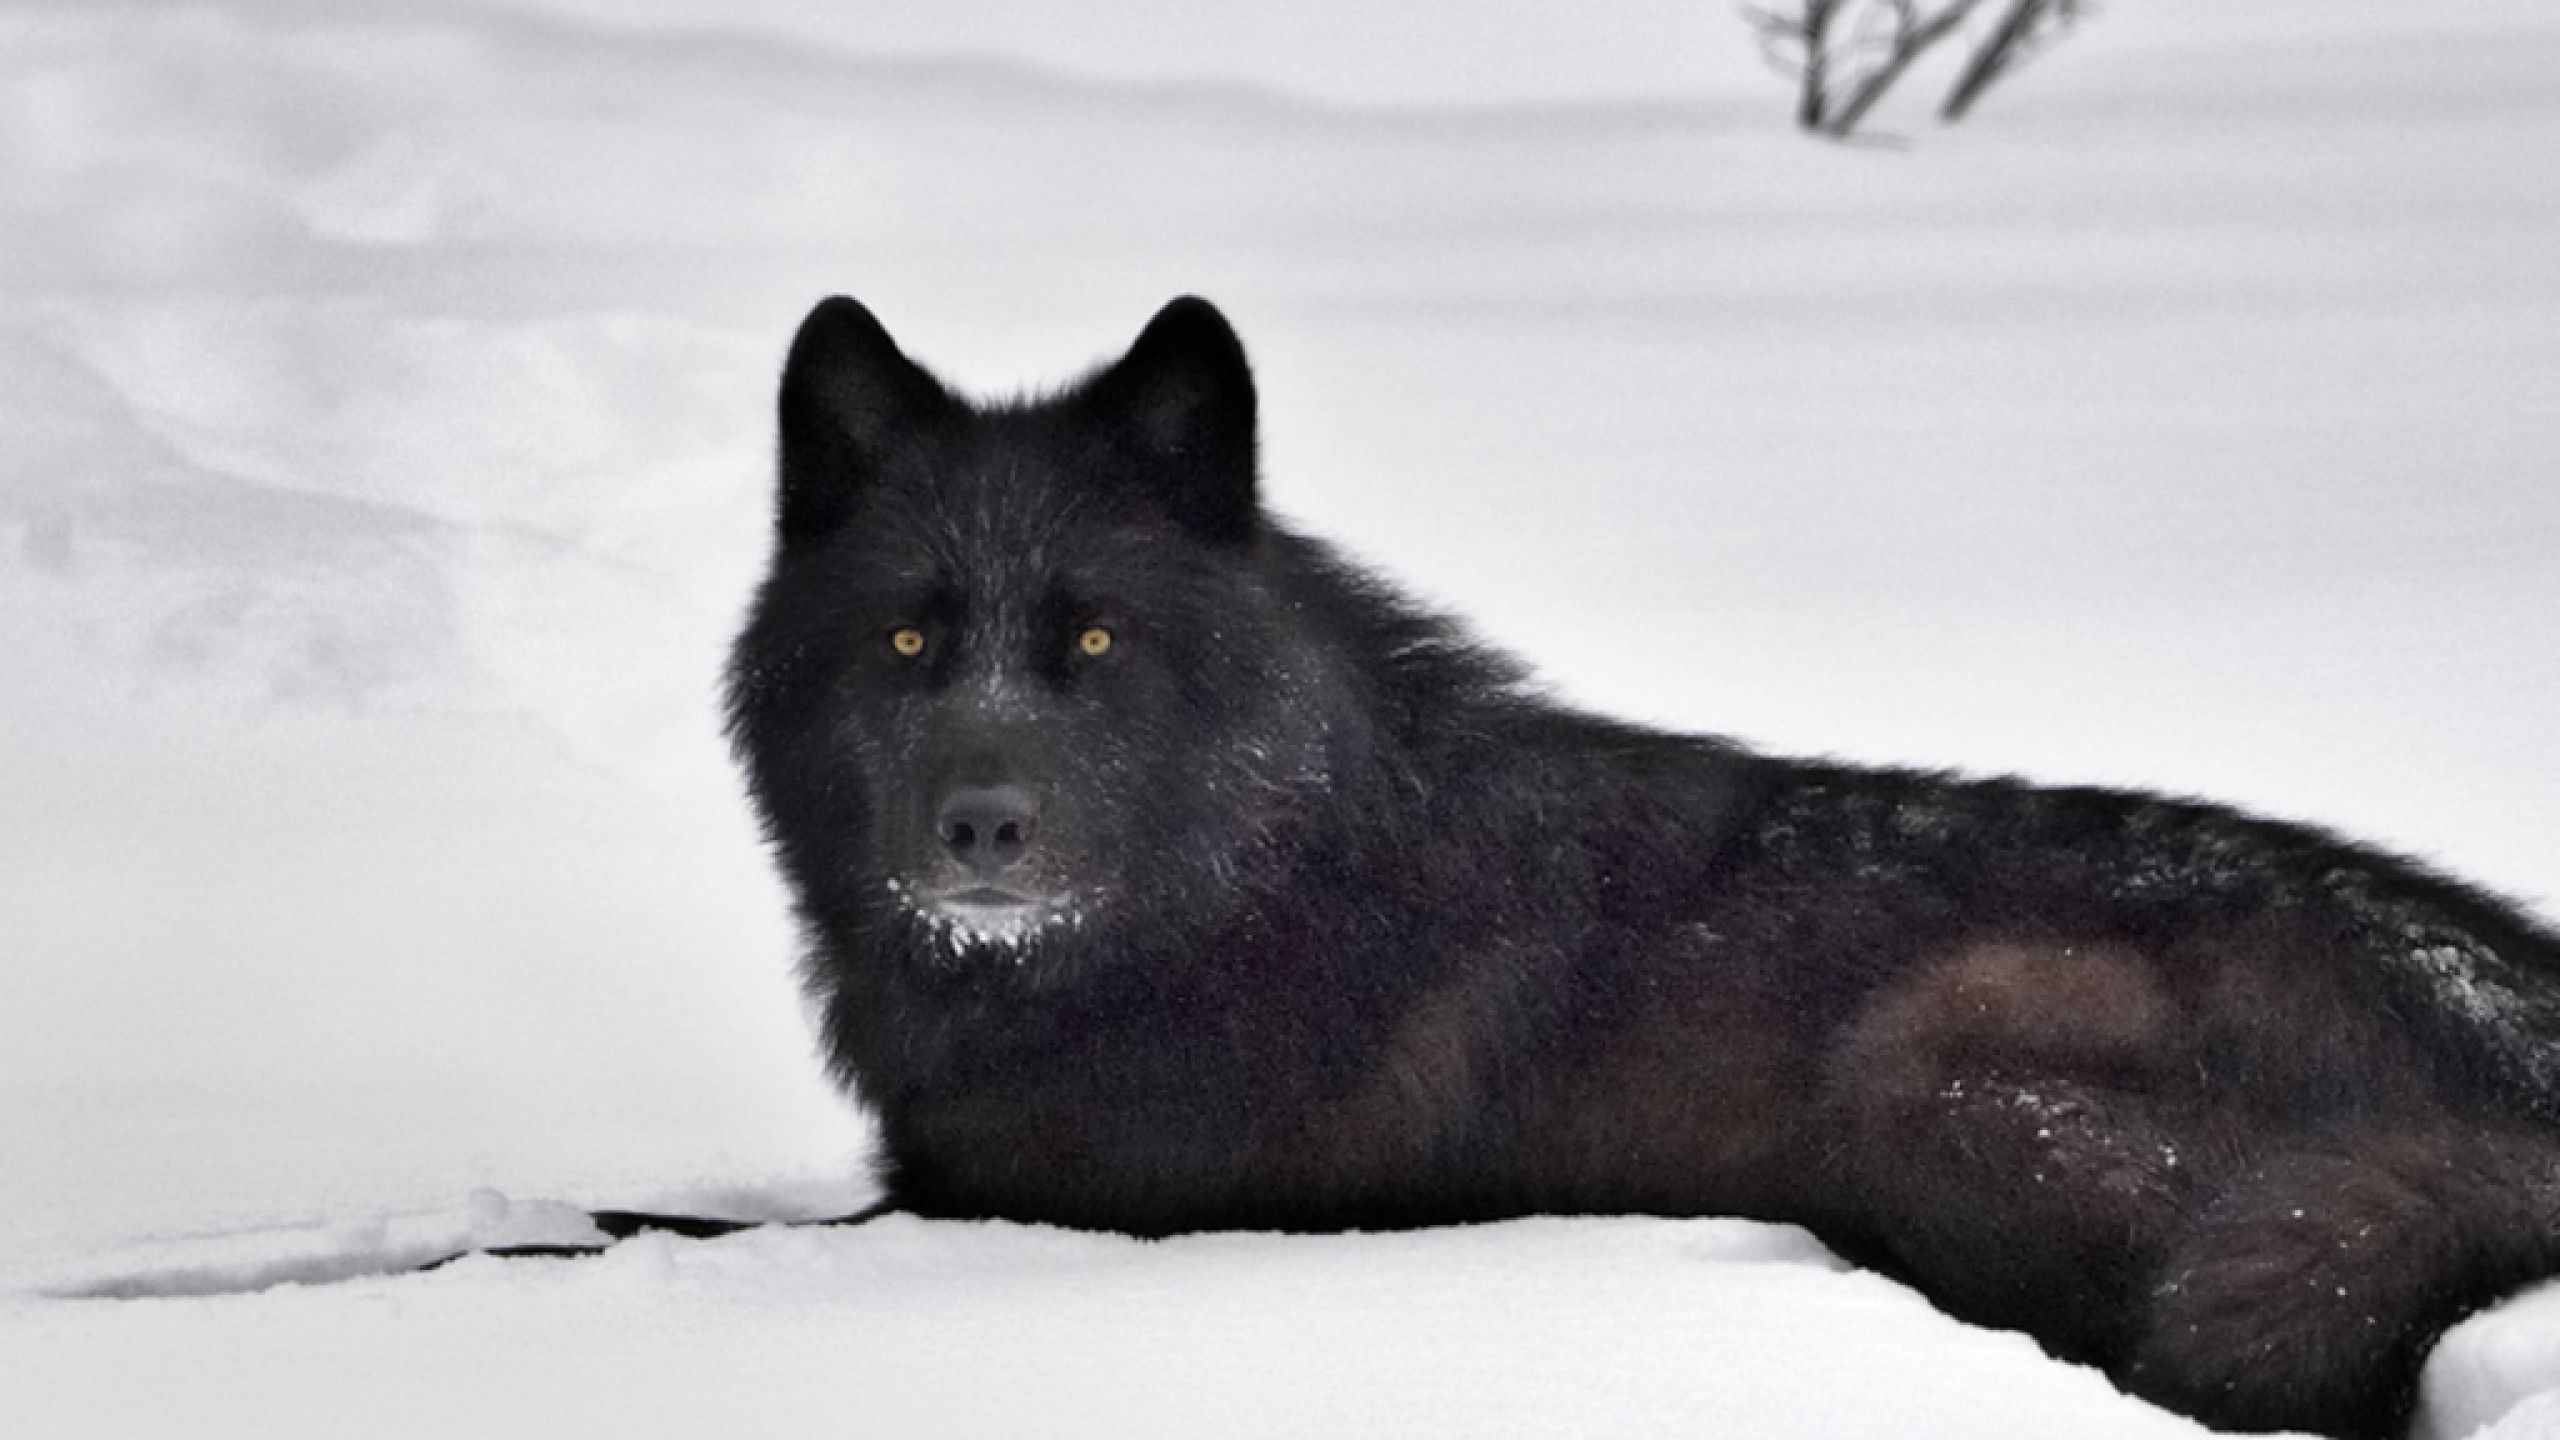 Black Wolf In Snow Wallpaper Black Wolf White Wolves 369264 Hd Wallpaper Backgrounds Download